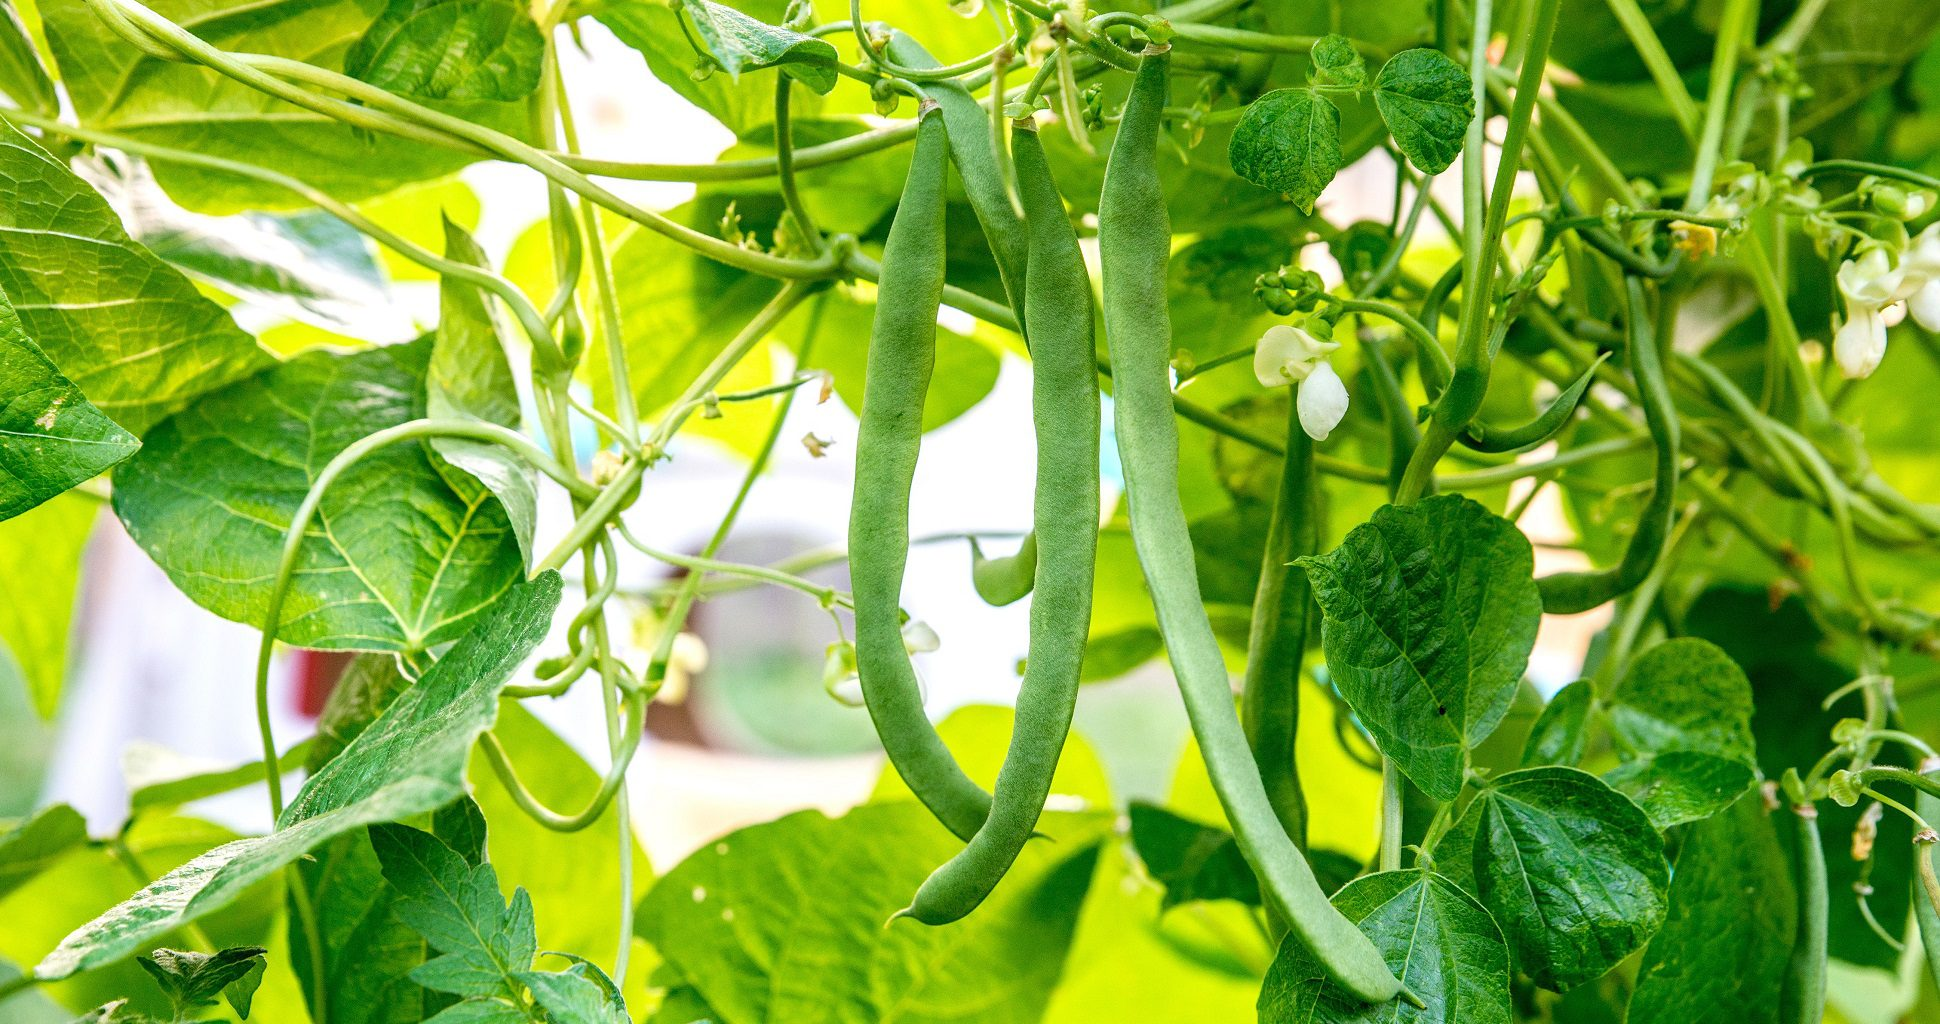 How To Grow Green Beans?